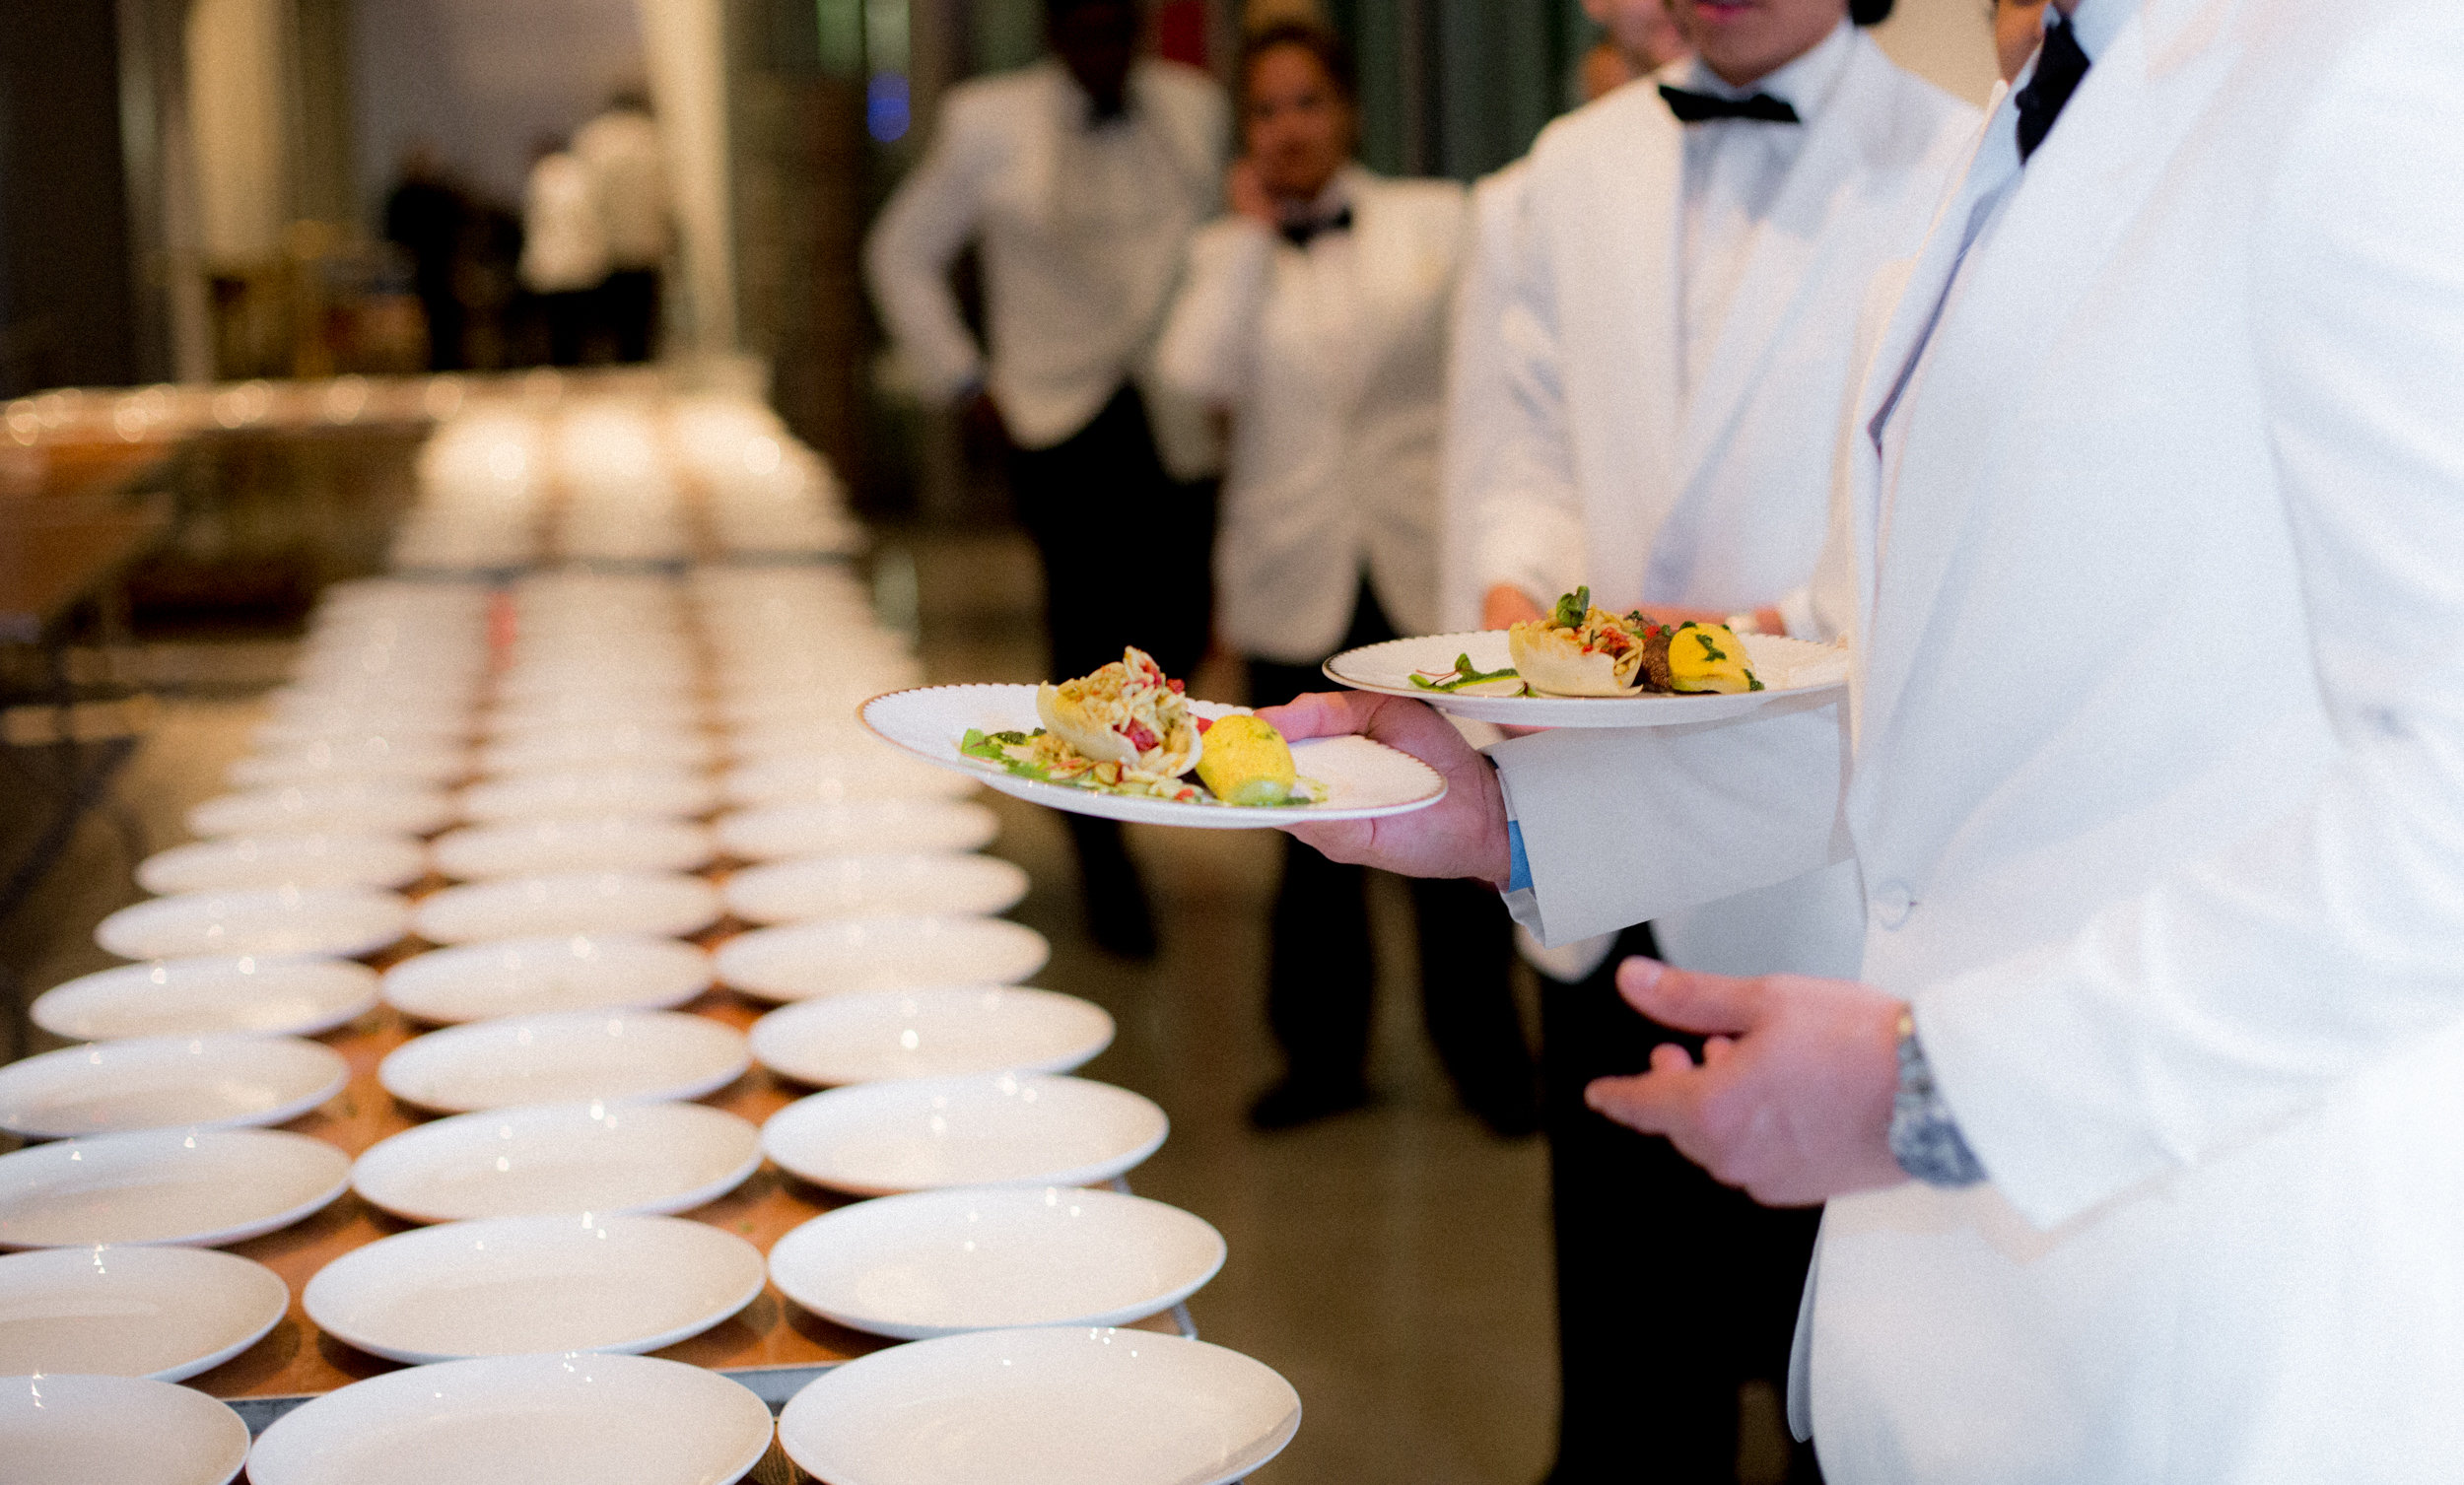 thierry isambert catering & gala production nws-0030.jpg